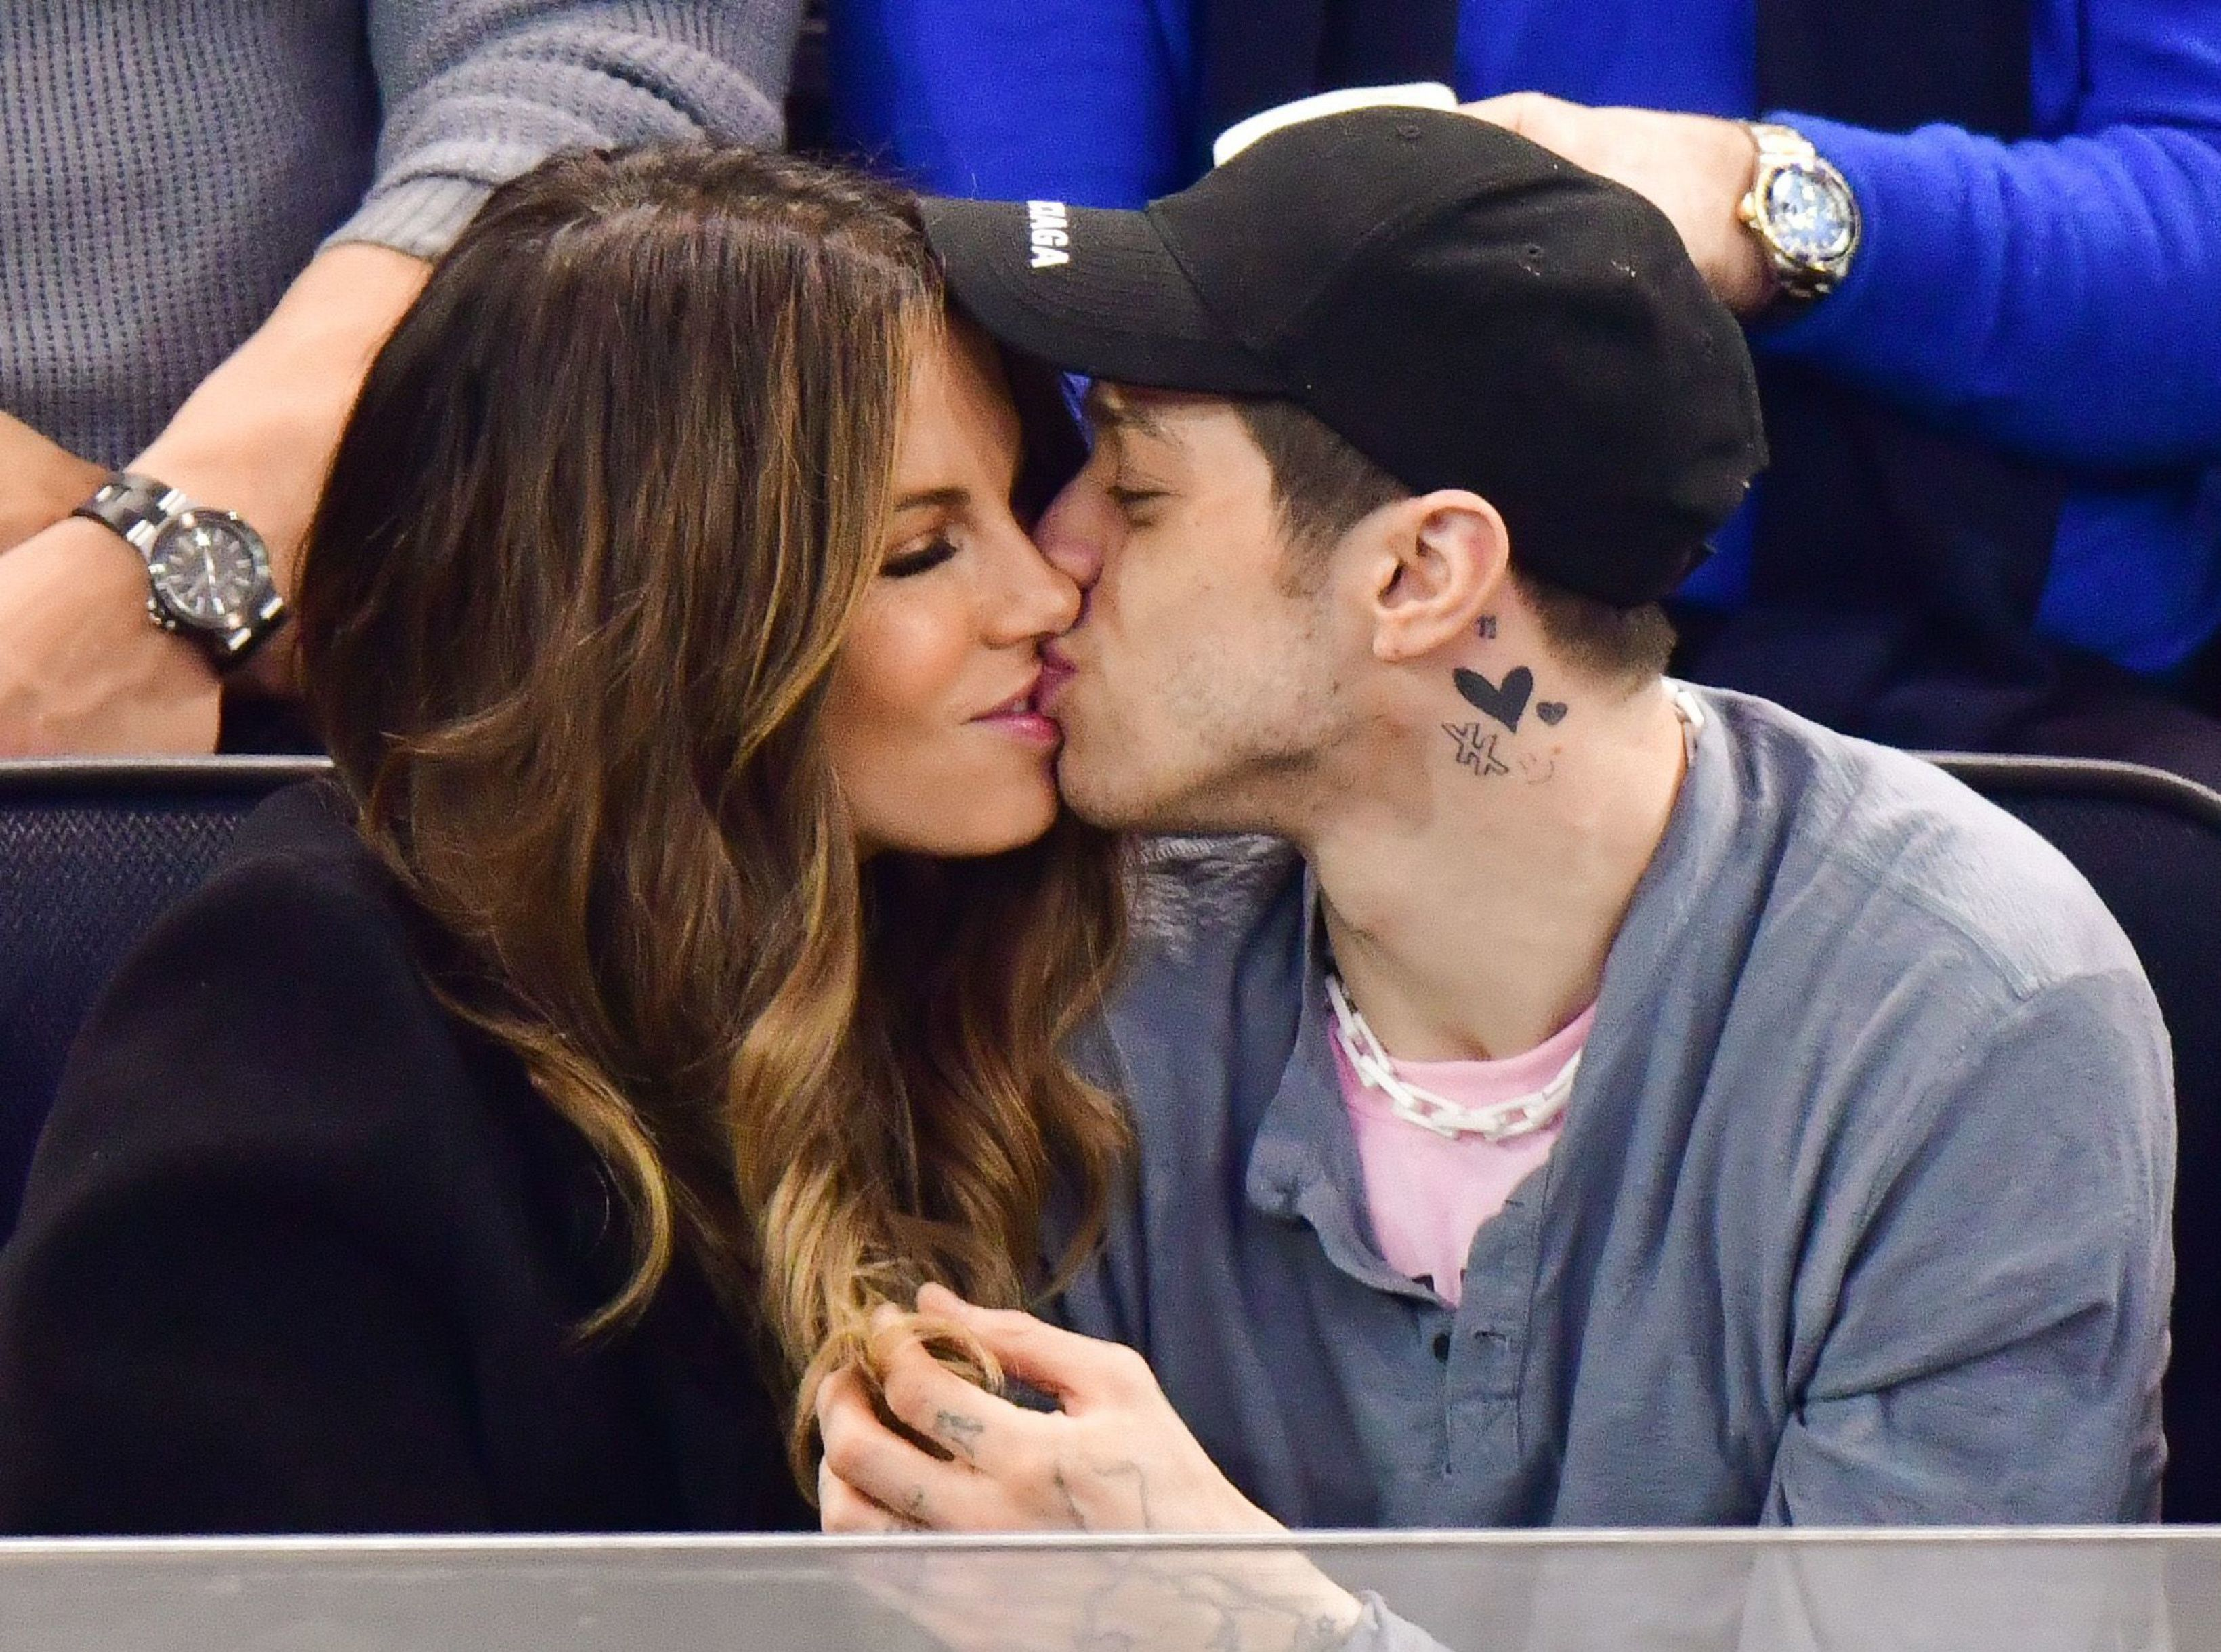 Kate Beckinsale and Pete Davidson kiss during a New York Rangers hockey game at Madison Square Garden in New York City on March 3, 2019.